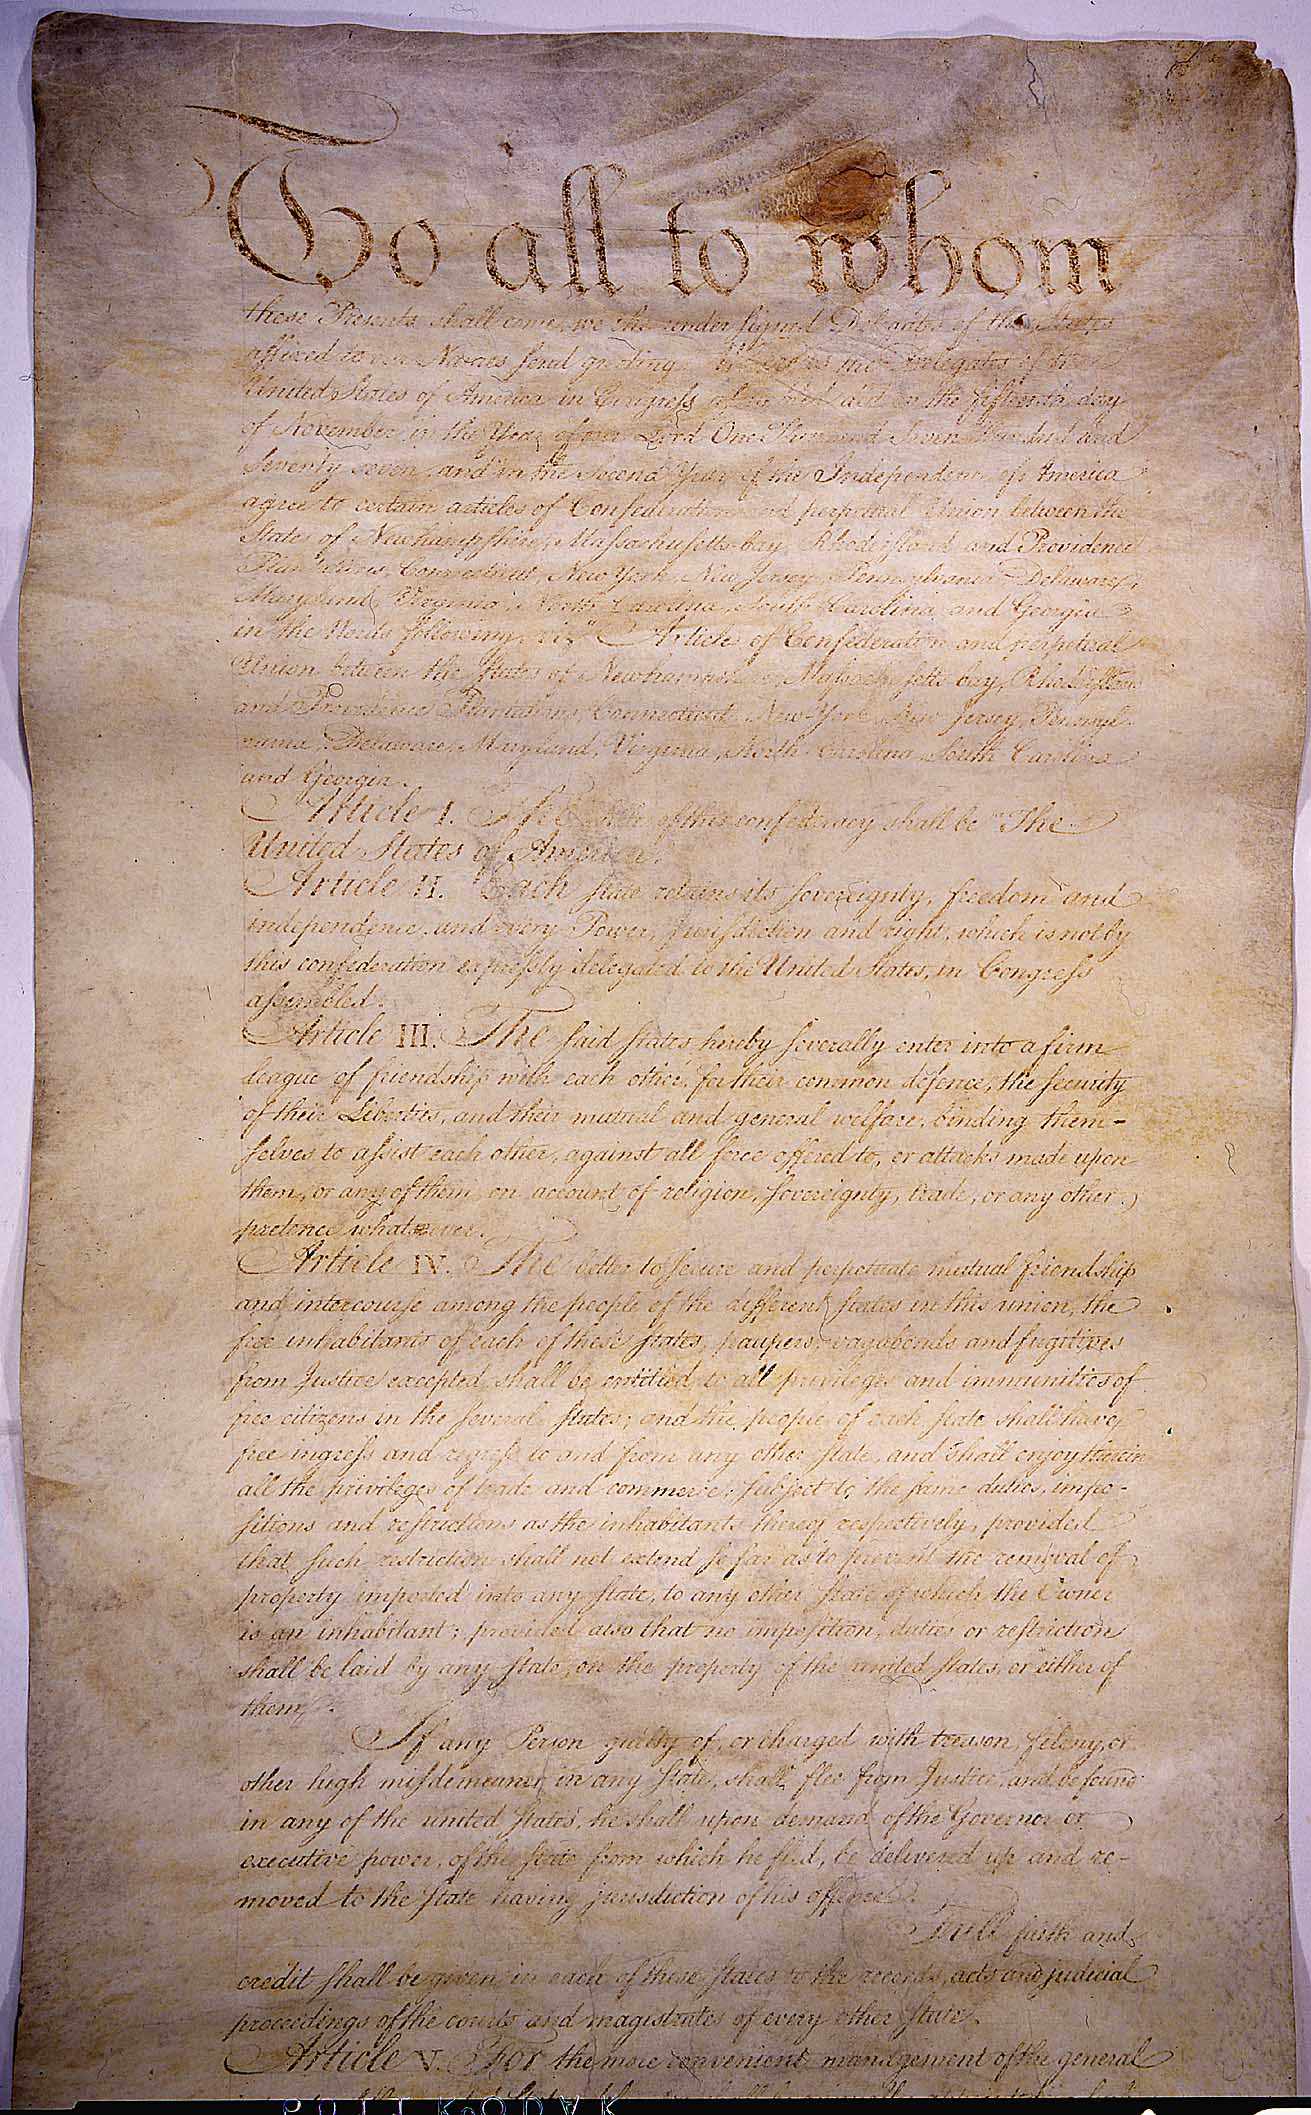 Declaration Of Independence clipart student 1 The Image the